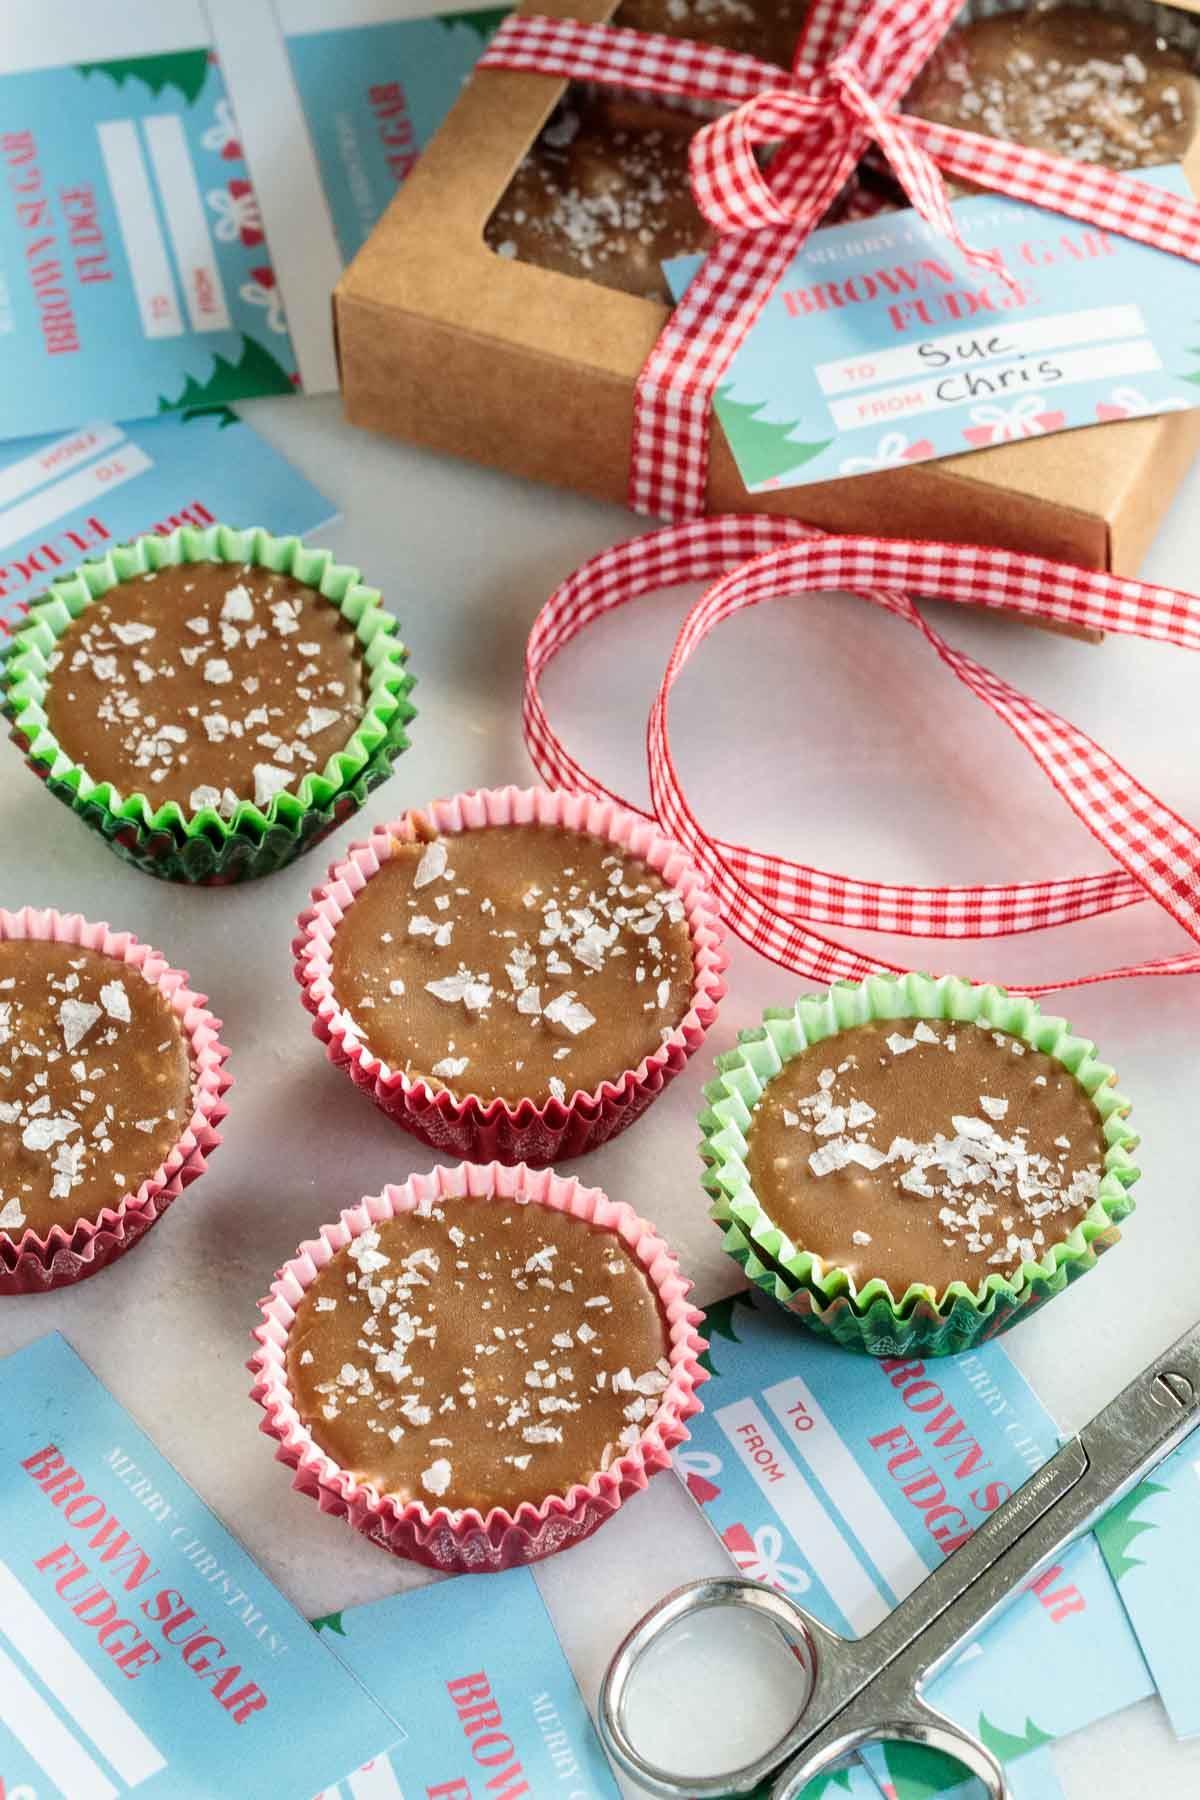 Photo of cups of Sea Salted Brown Sugar Fudge surrounded by gift boxes, labels and ribbon.